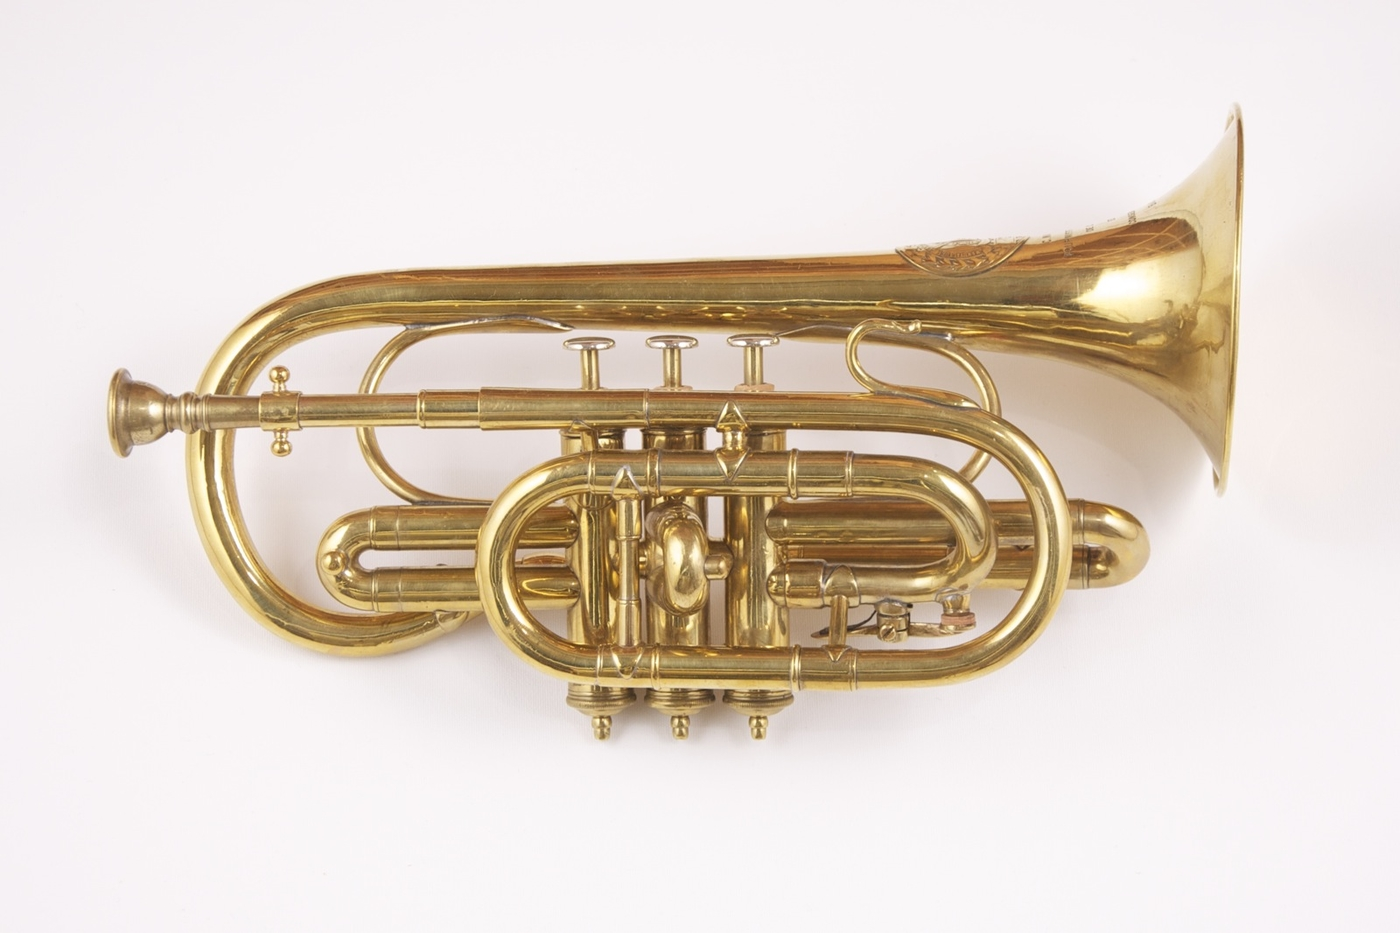 brass instrument The croswodsolvercom system found 23 answers for military brass instrument crossword clue our system collect crossword clues from most populer crossword, cryptic puzzle, quick/small crossword that found in daily mail, daily telegraph, daily express, daily mirror, herald-sun, the courier-mail, dominion post and many others popular newspaper.